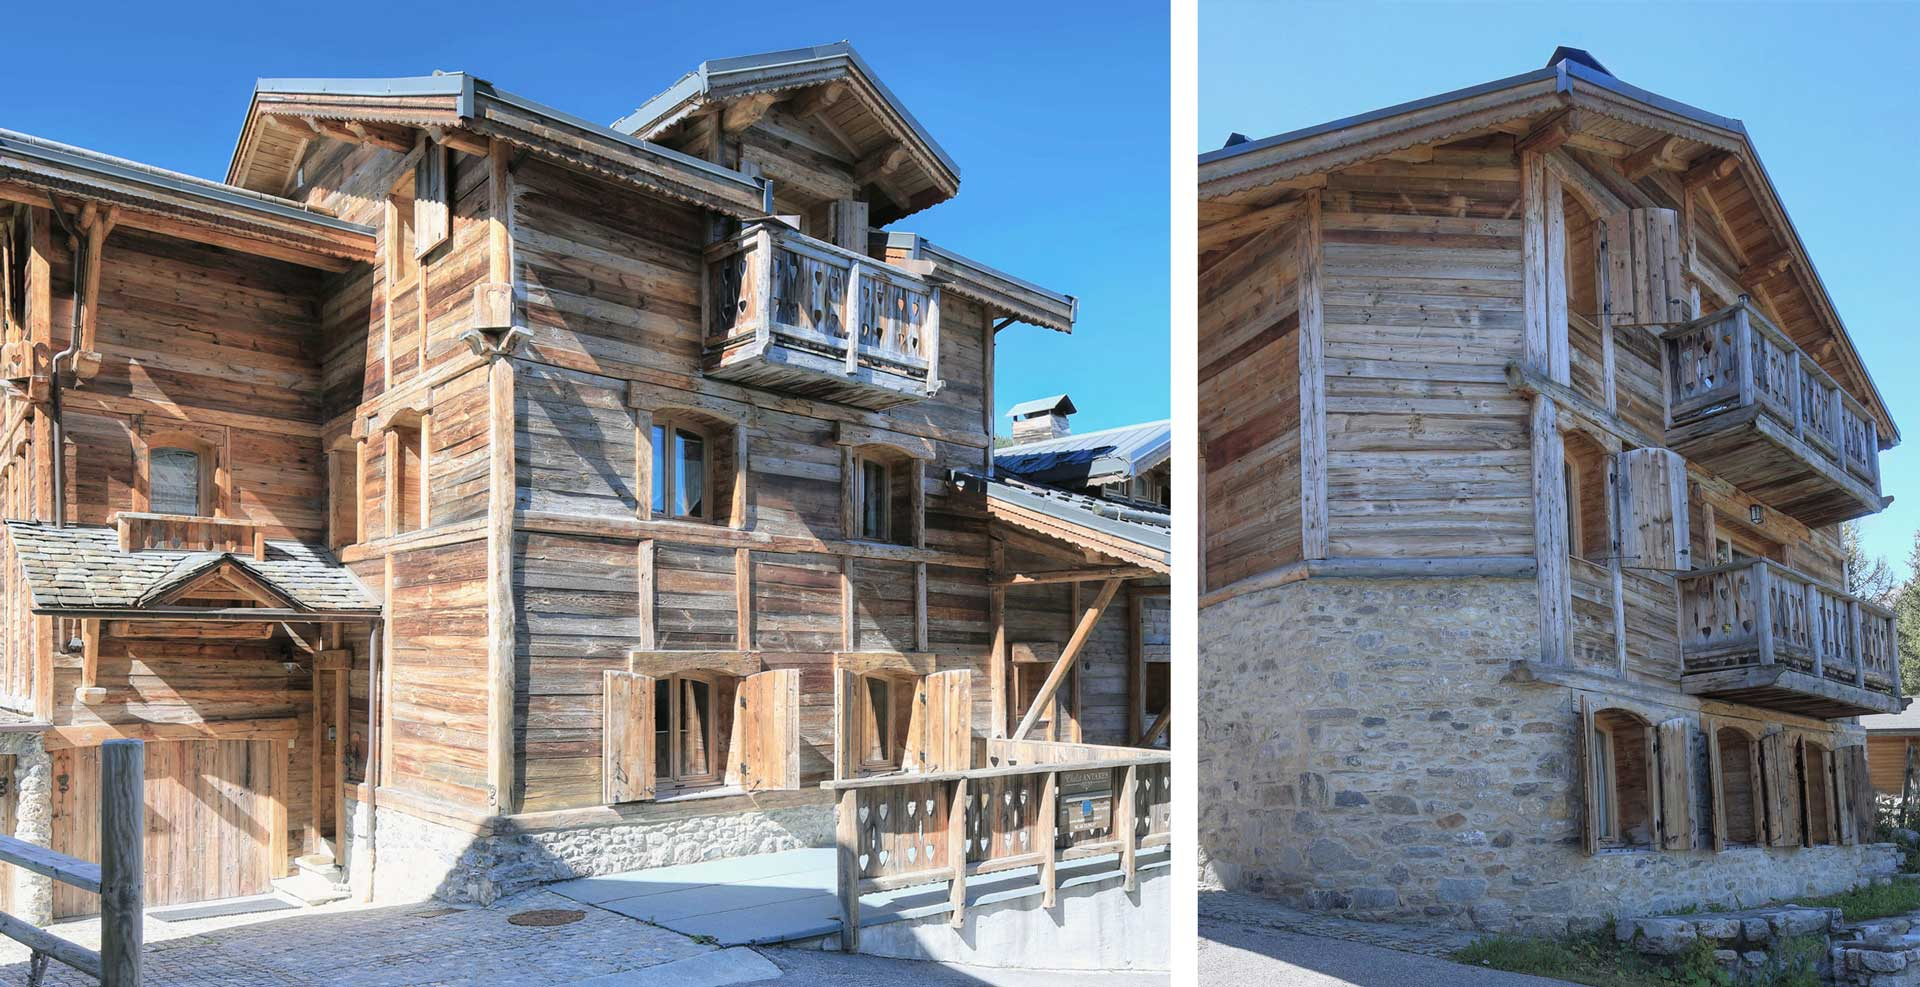 3 appartements à louer à courchevel